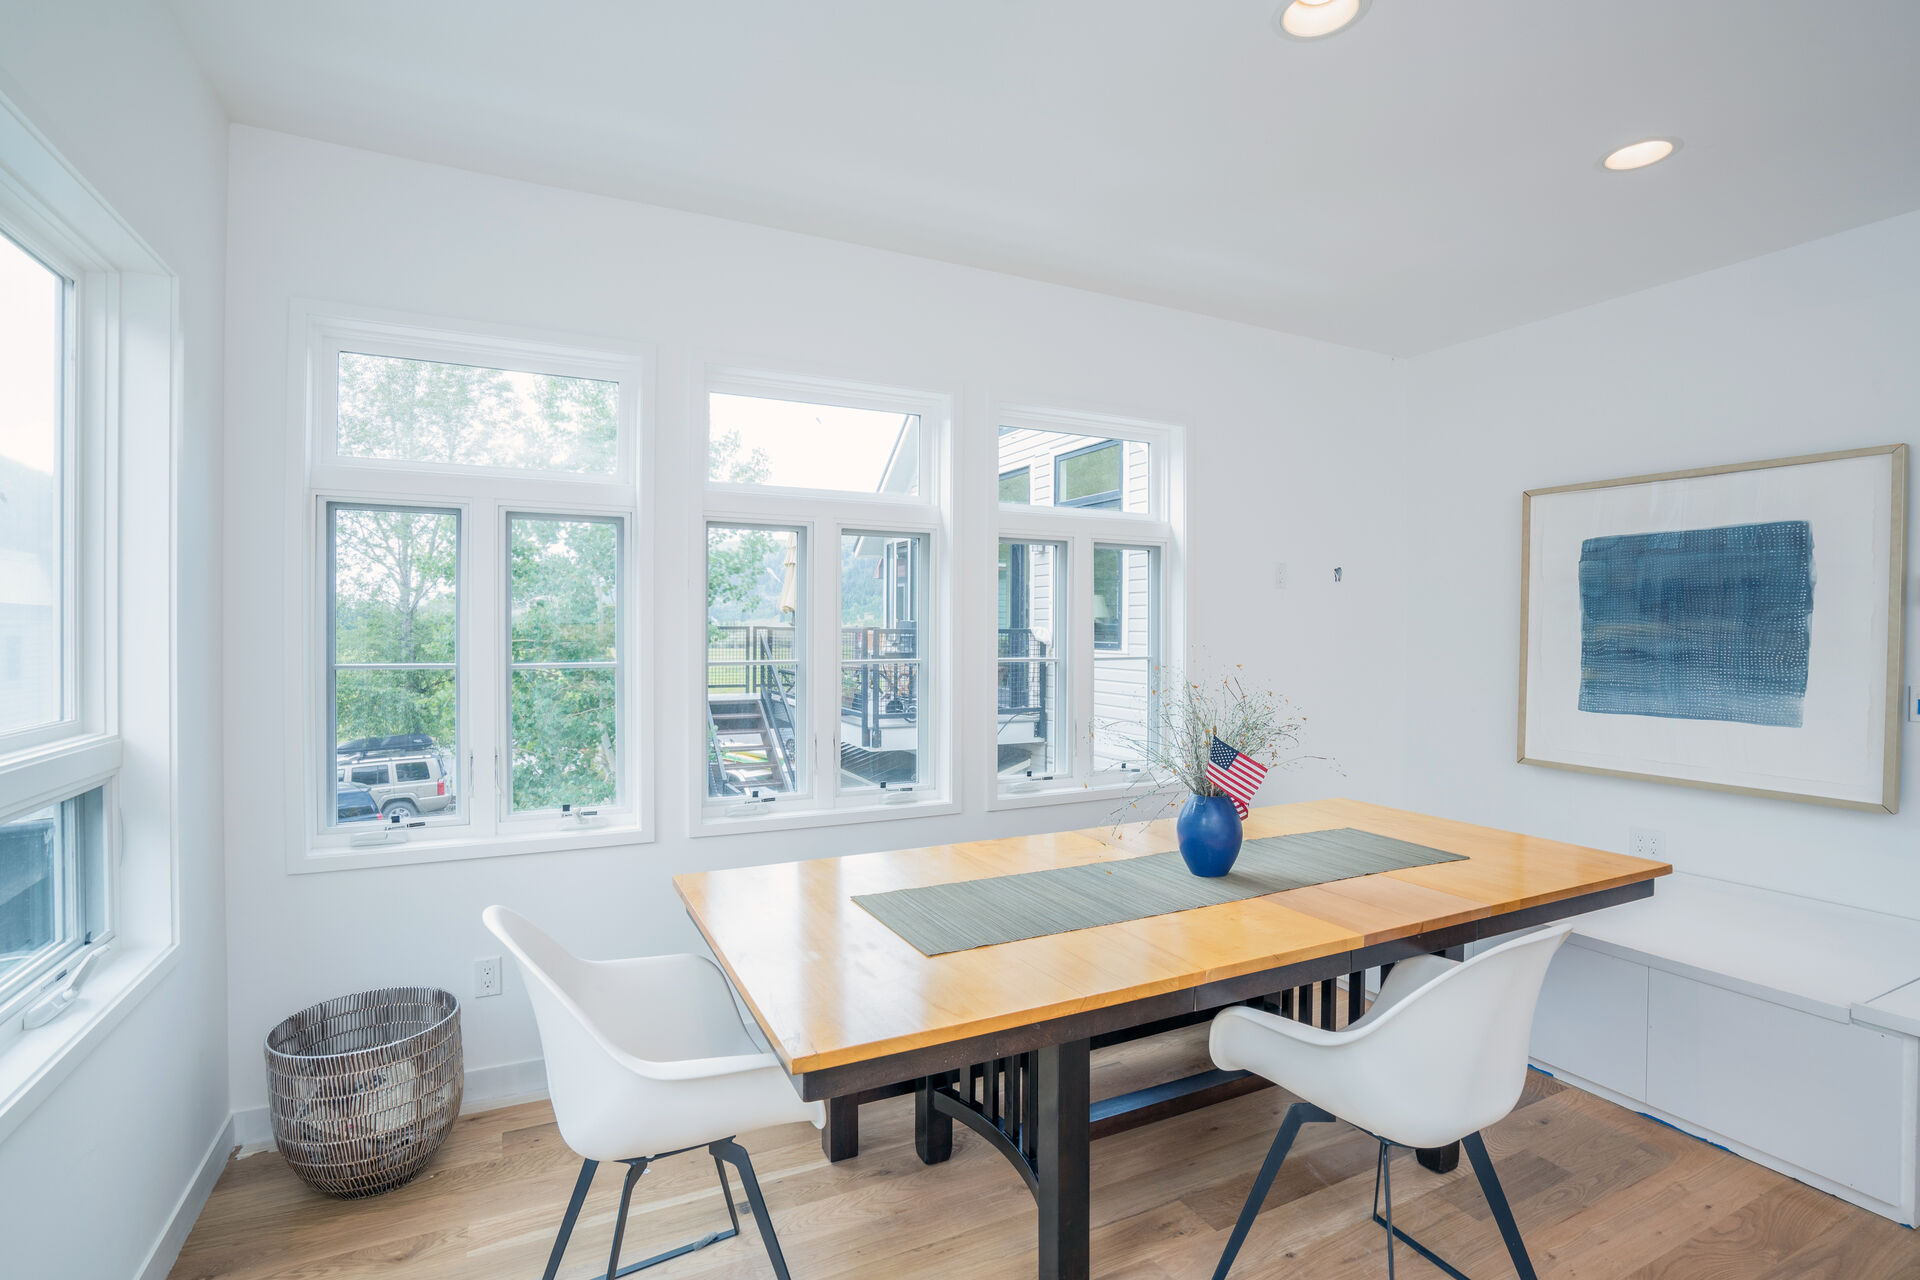 Dining Area with Ample Seating and Views of outside at Vacation Home in Telluride